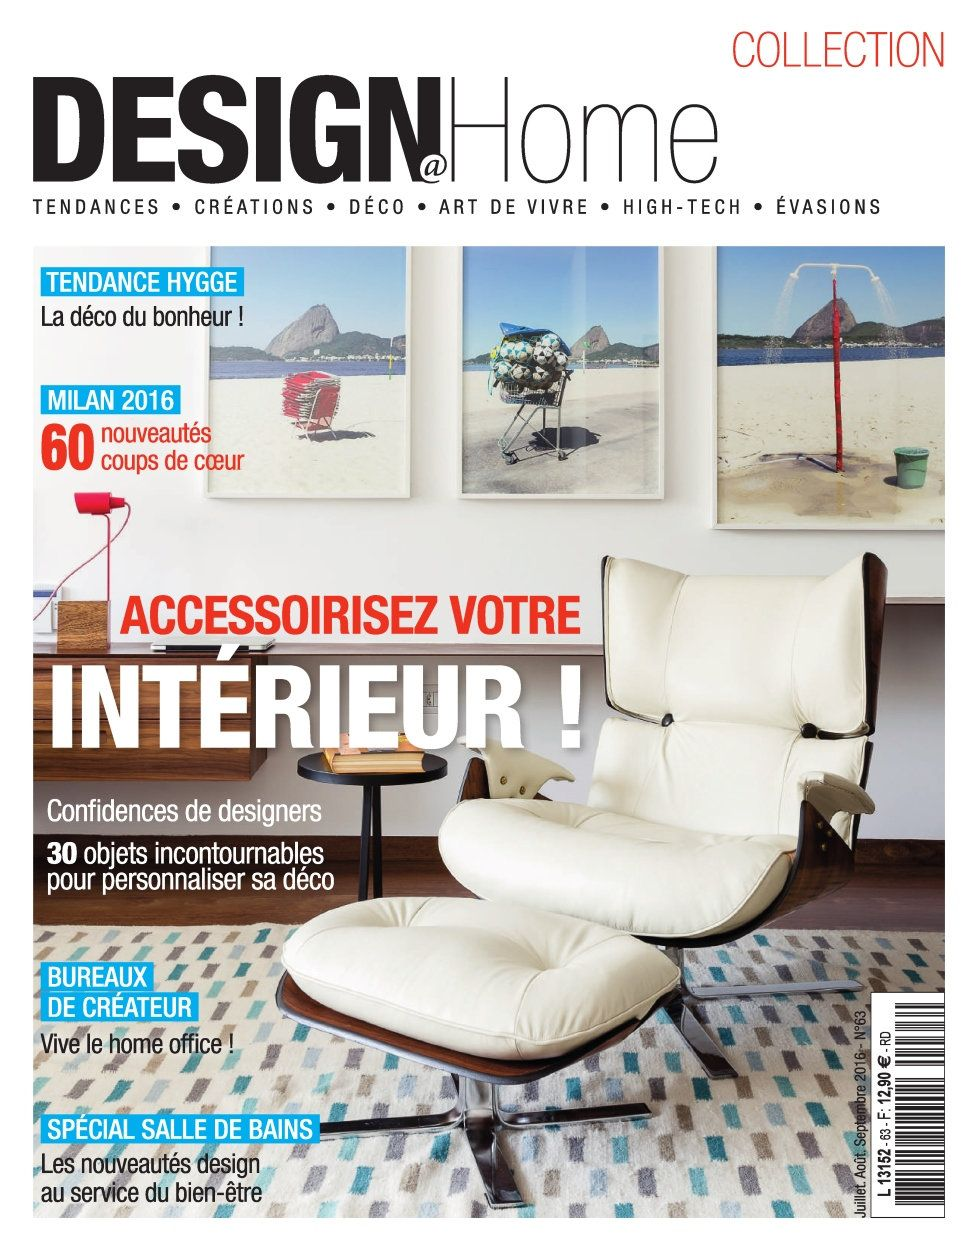 Design@Home 63 - Juillet/Septembre 2016